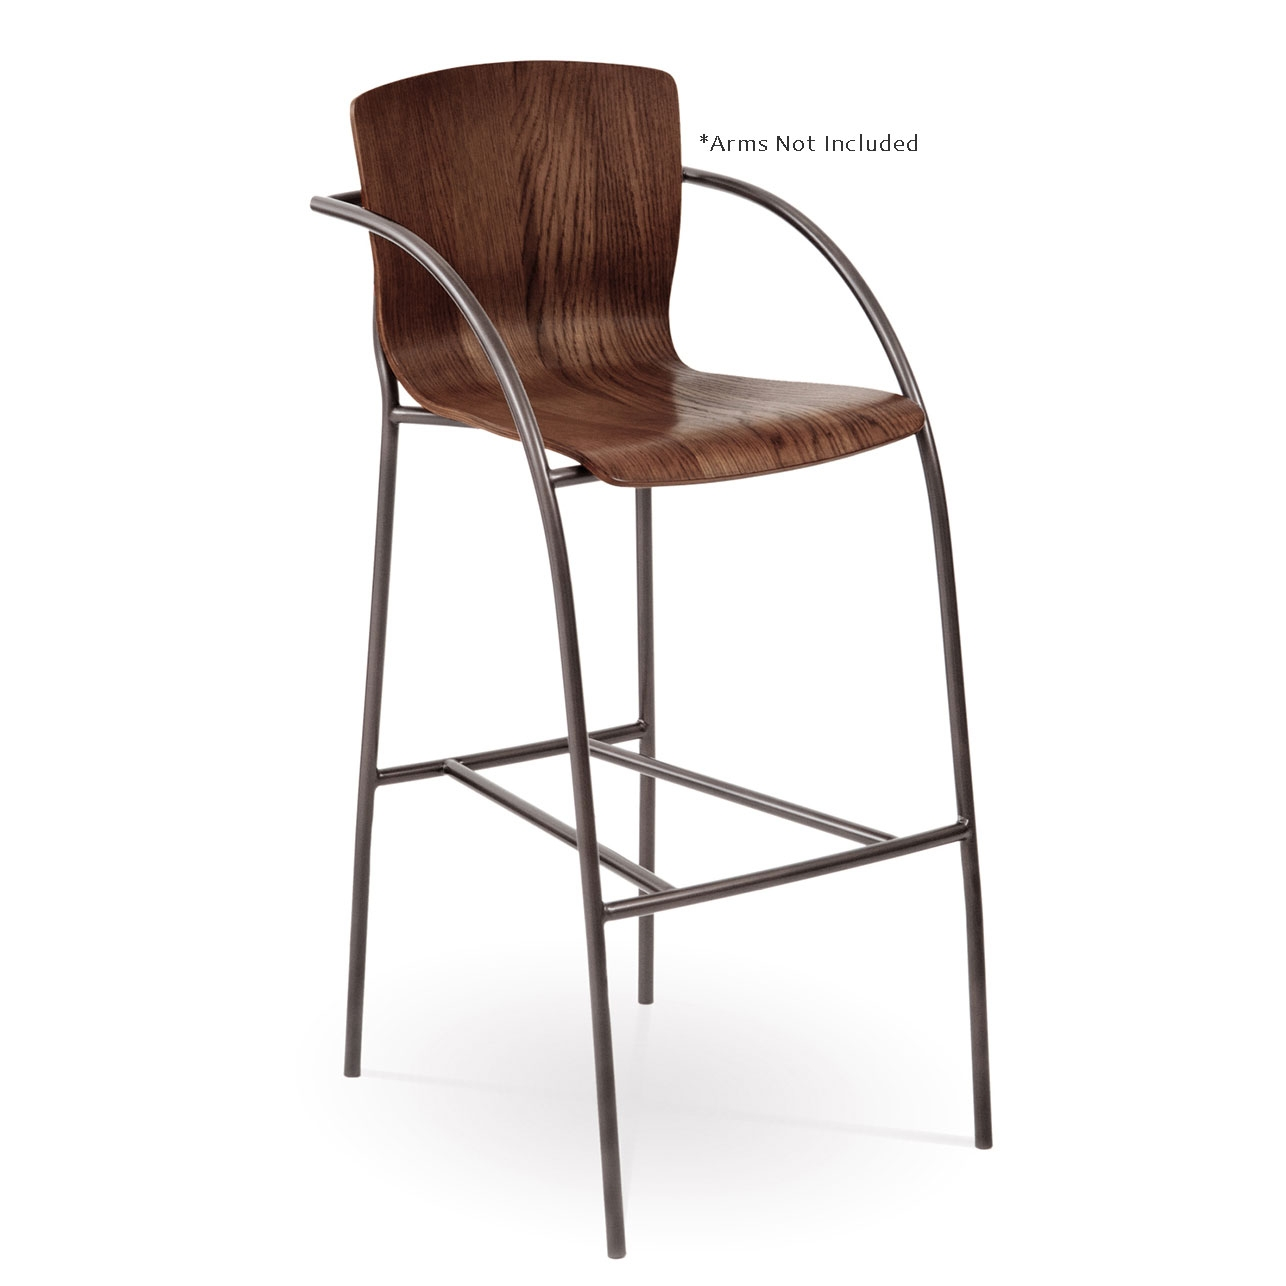 Pictured Here Is The Merritt Bar Stool Quality Hand